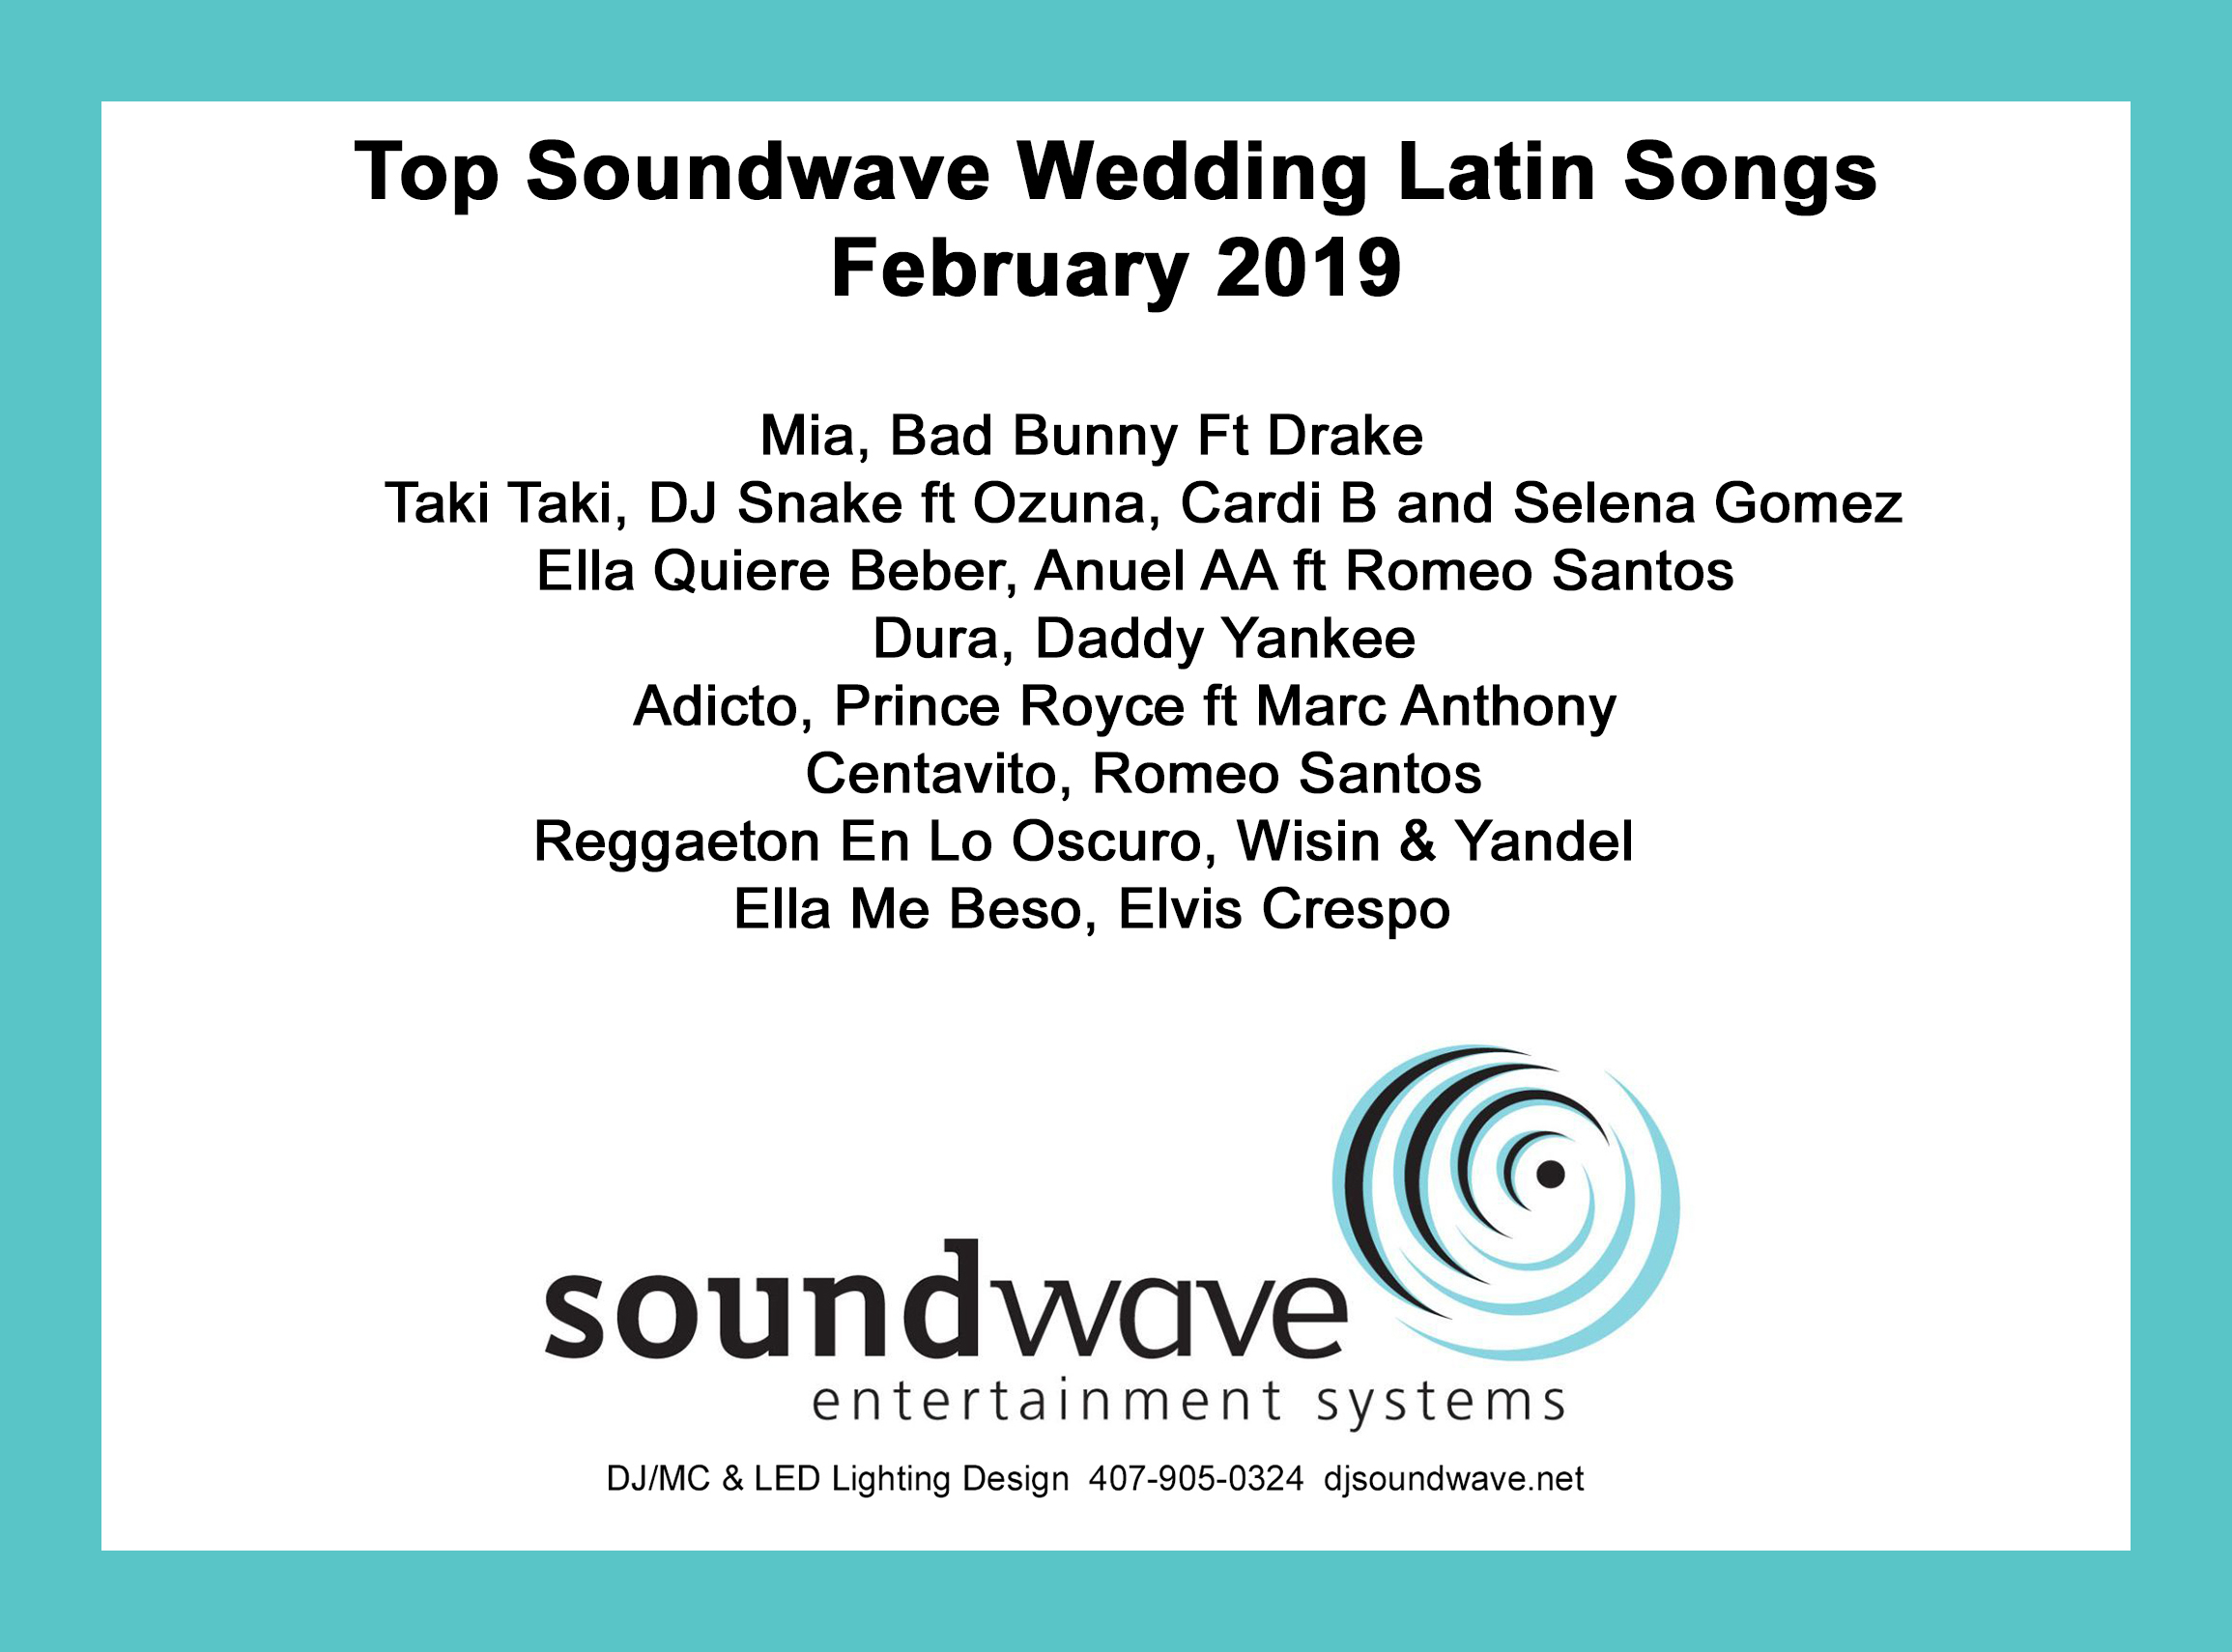 latin wedding songs - latin songs - orlando latin dj - soundwave entertainement